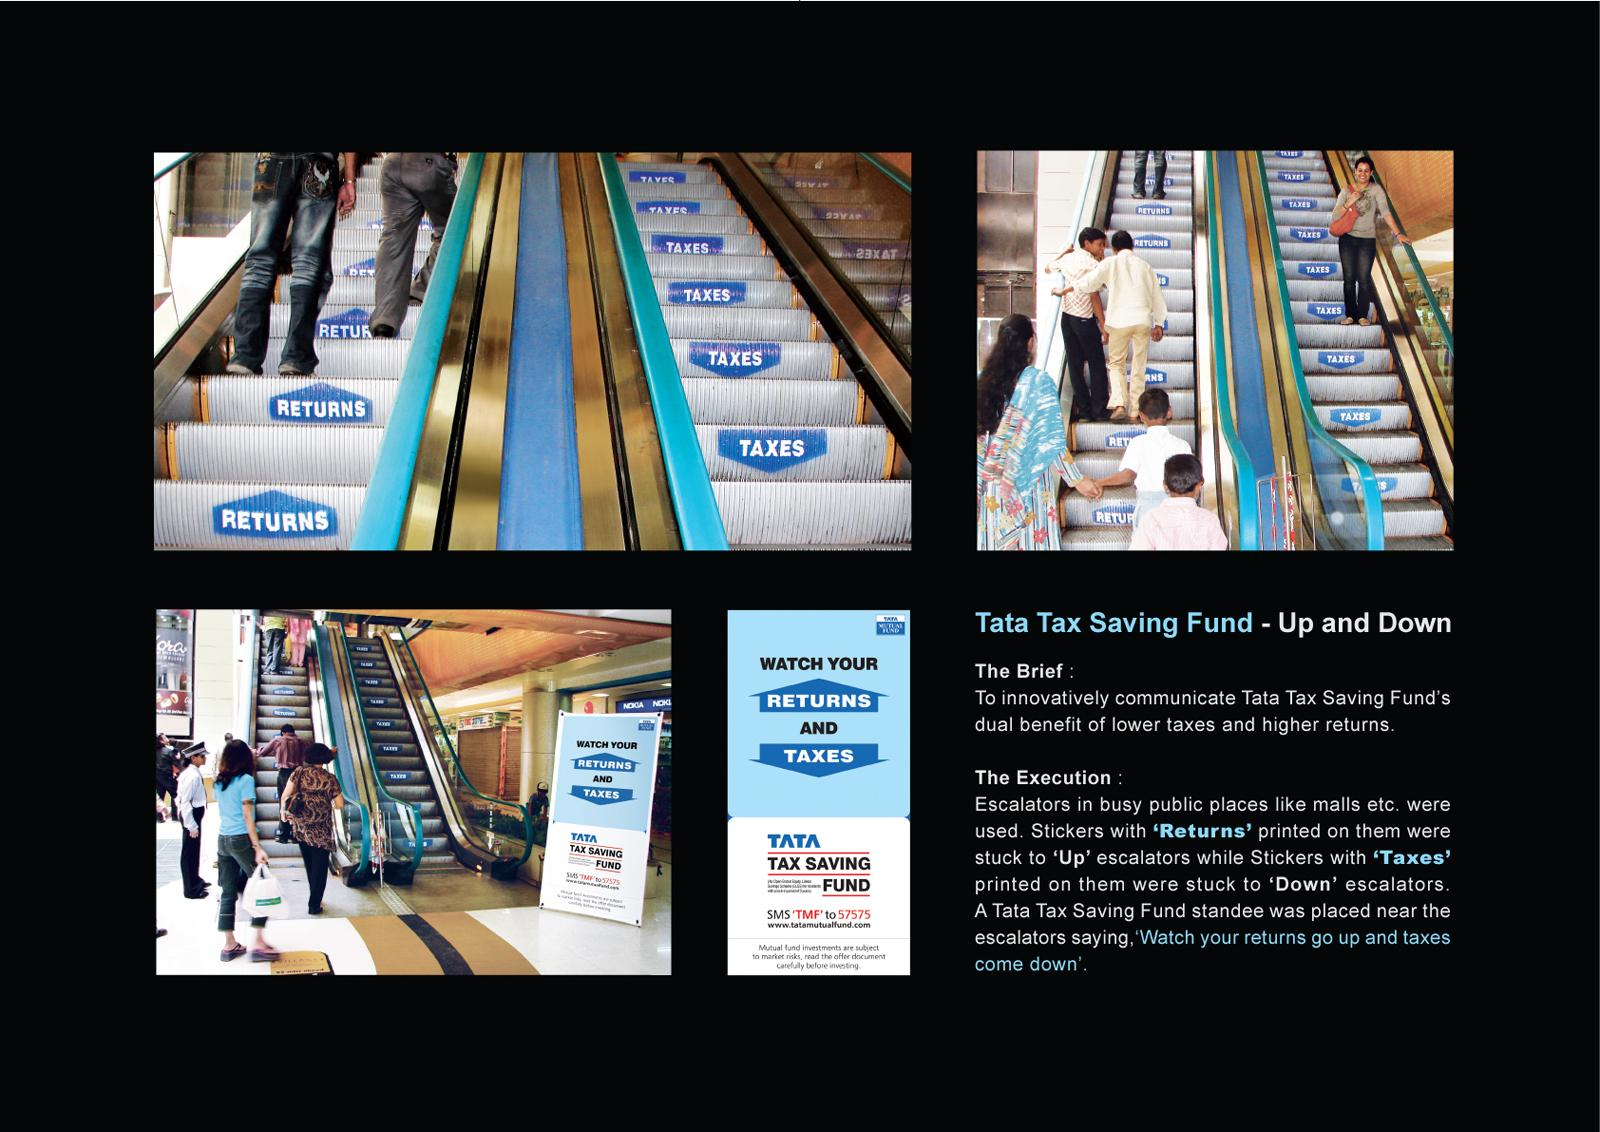 Tata Ambient Ad -  Watch your returns and taxes